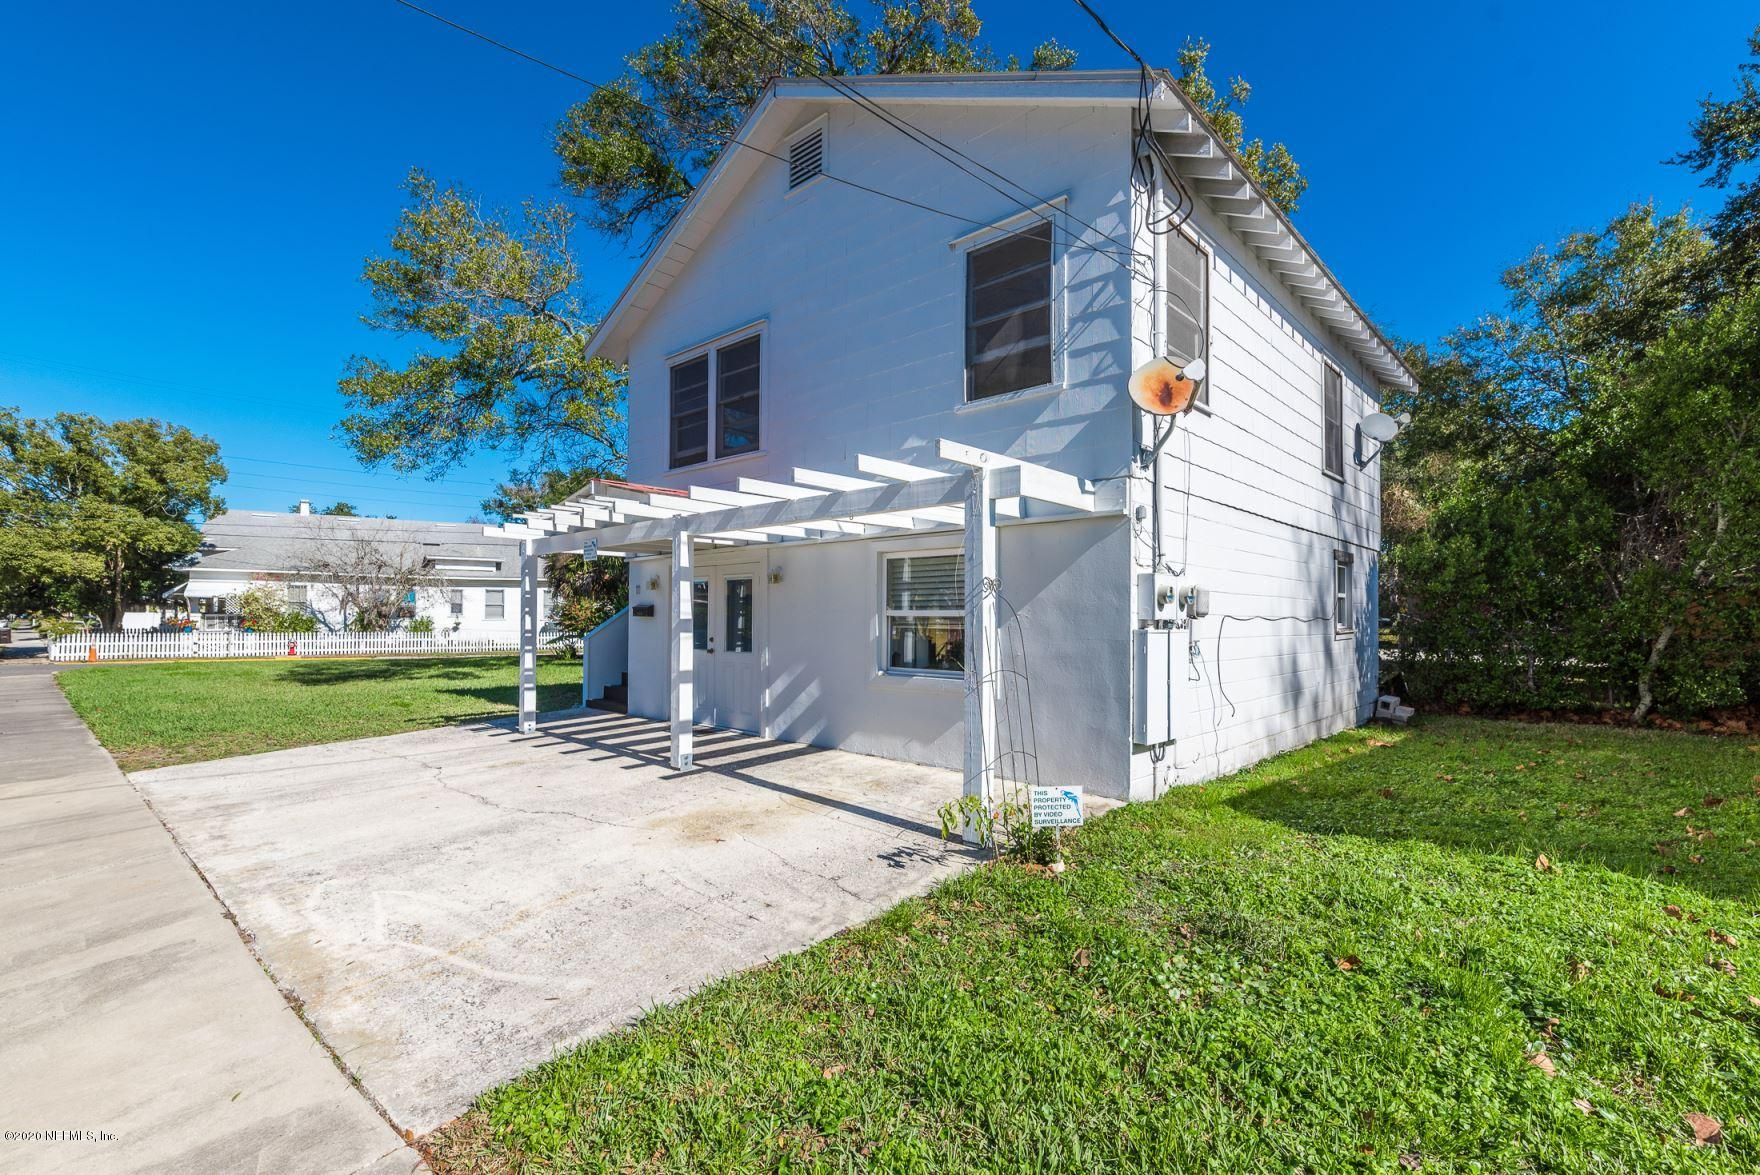 11 GRANT, ST AUGUSTINE, FLORIDA 32084, 3 Bedrooms Bedrooms, ,2 BathroomsBathrooms,Investment / MultiFamily,For sale,GRANT,1034251